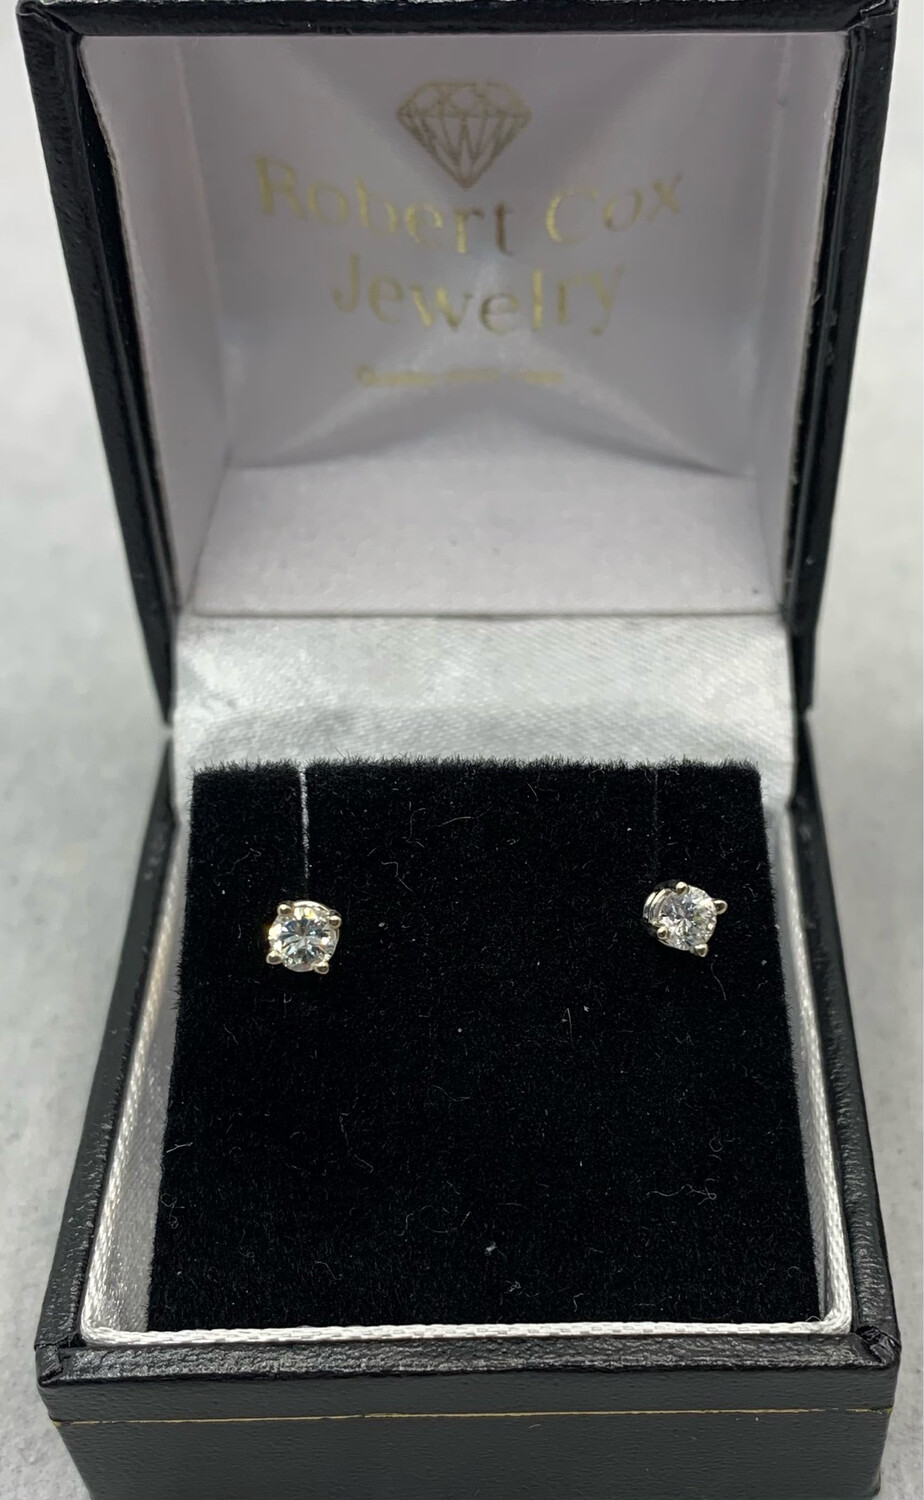 1/3 Ct Total Weight Brilliant Cut Diamond Studs 14kt White Gold